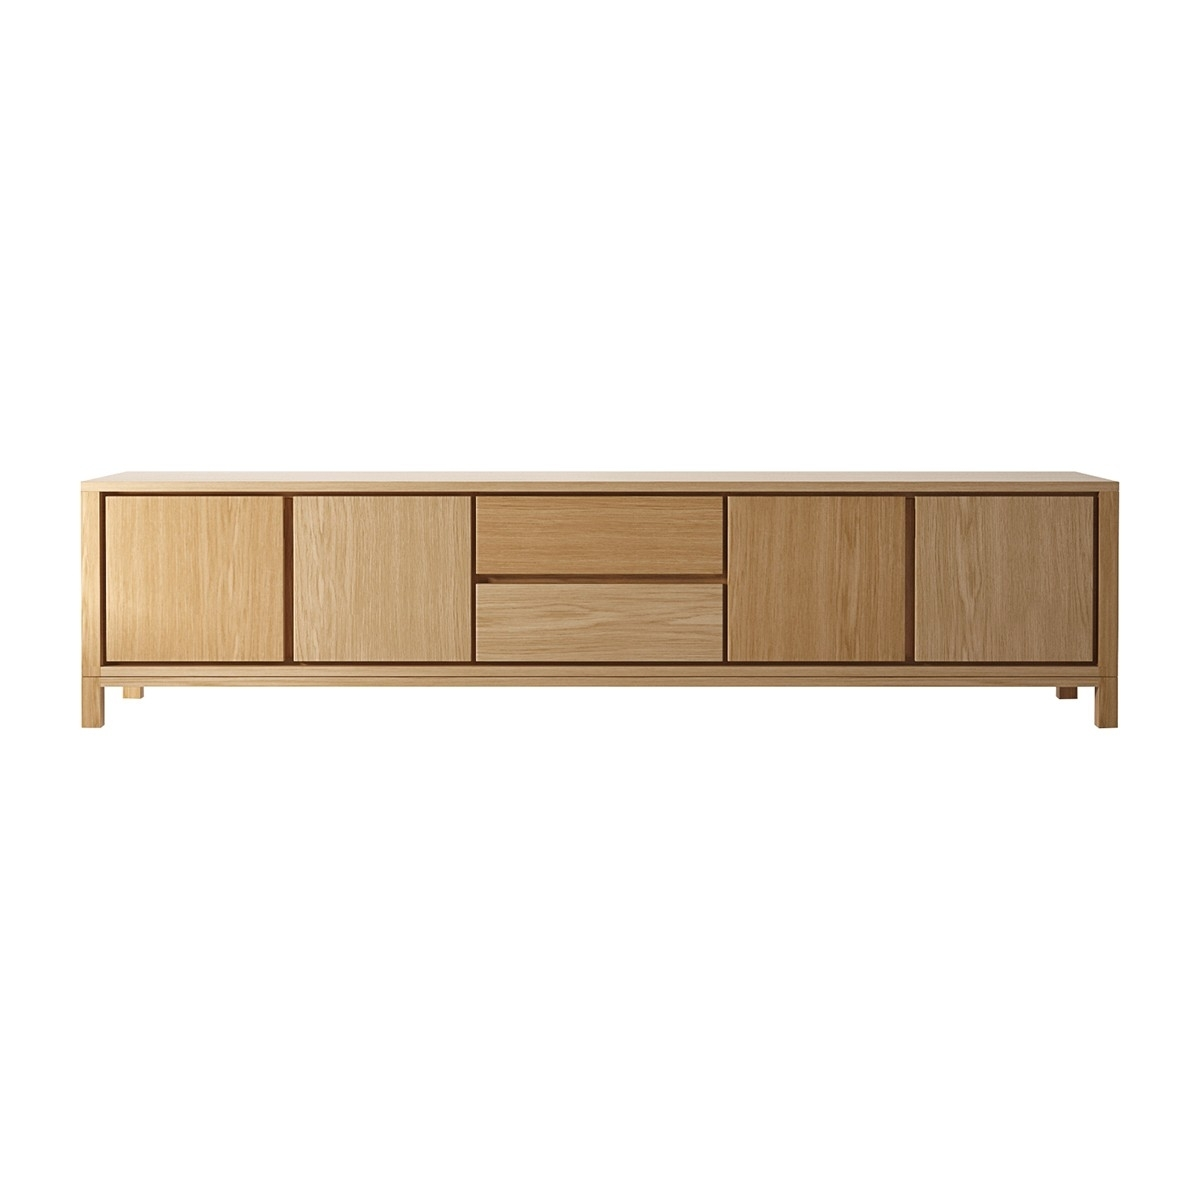 Karpenter - Solid Sideboard 2 Drawers & 4 Doors - Modern Sideboards intended for Open Shelf Brass 4-Drawer Sideboards (Image 8 of 30)